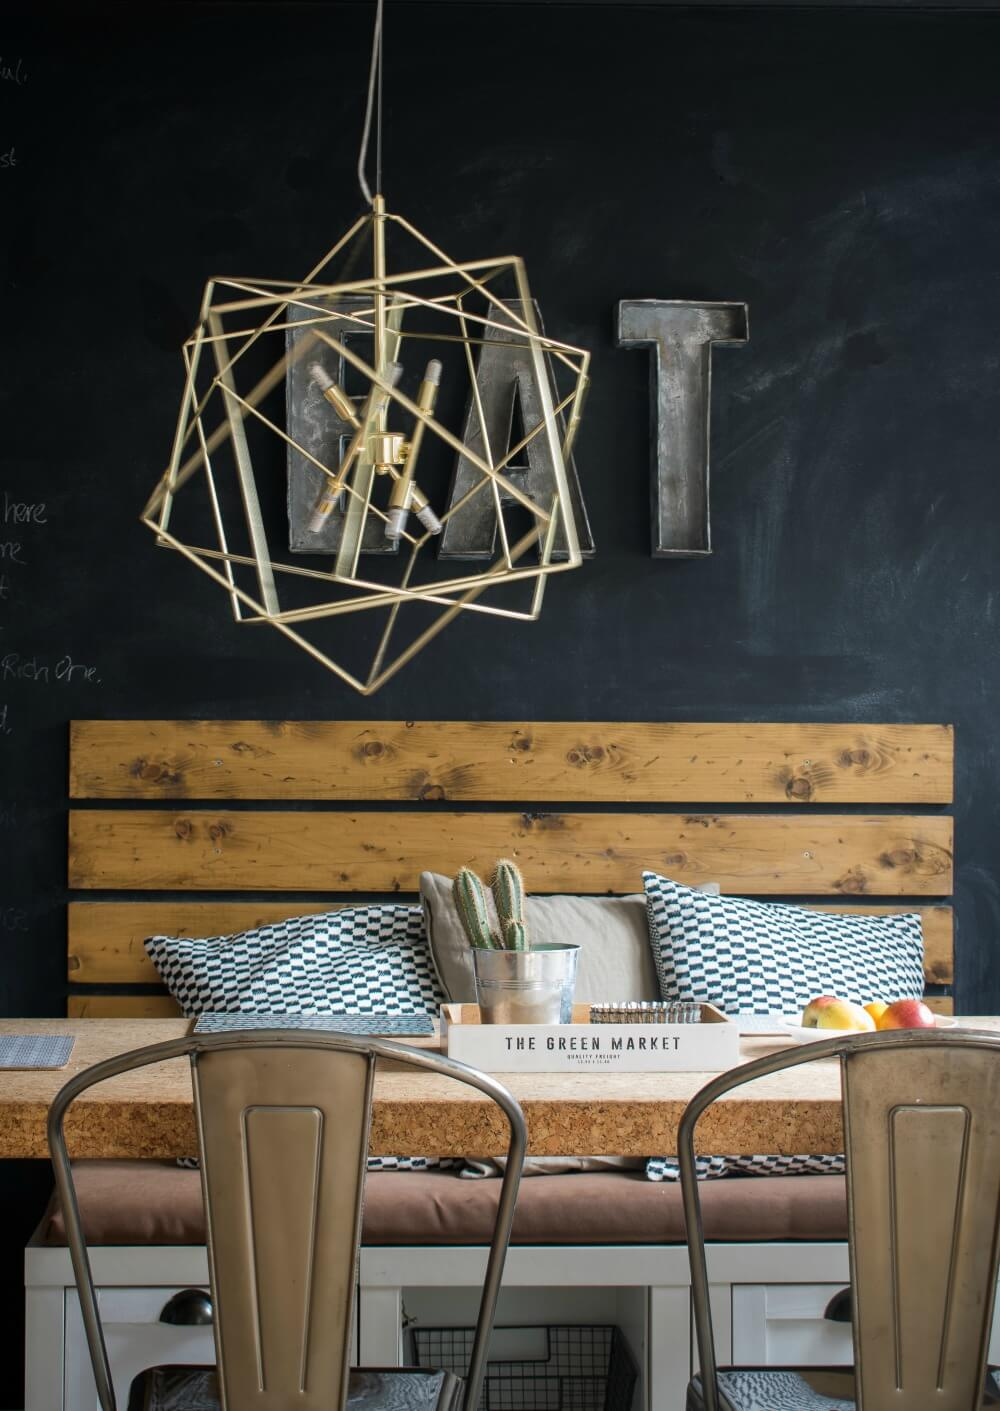 Ceiling pendant from the iconic modern lighting collection / grillo designs